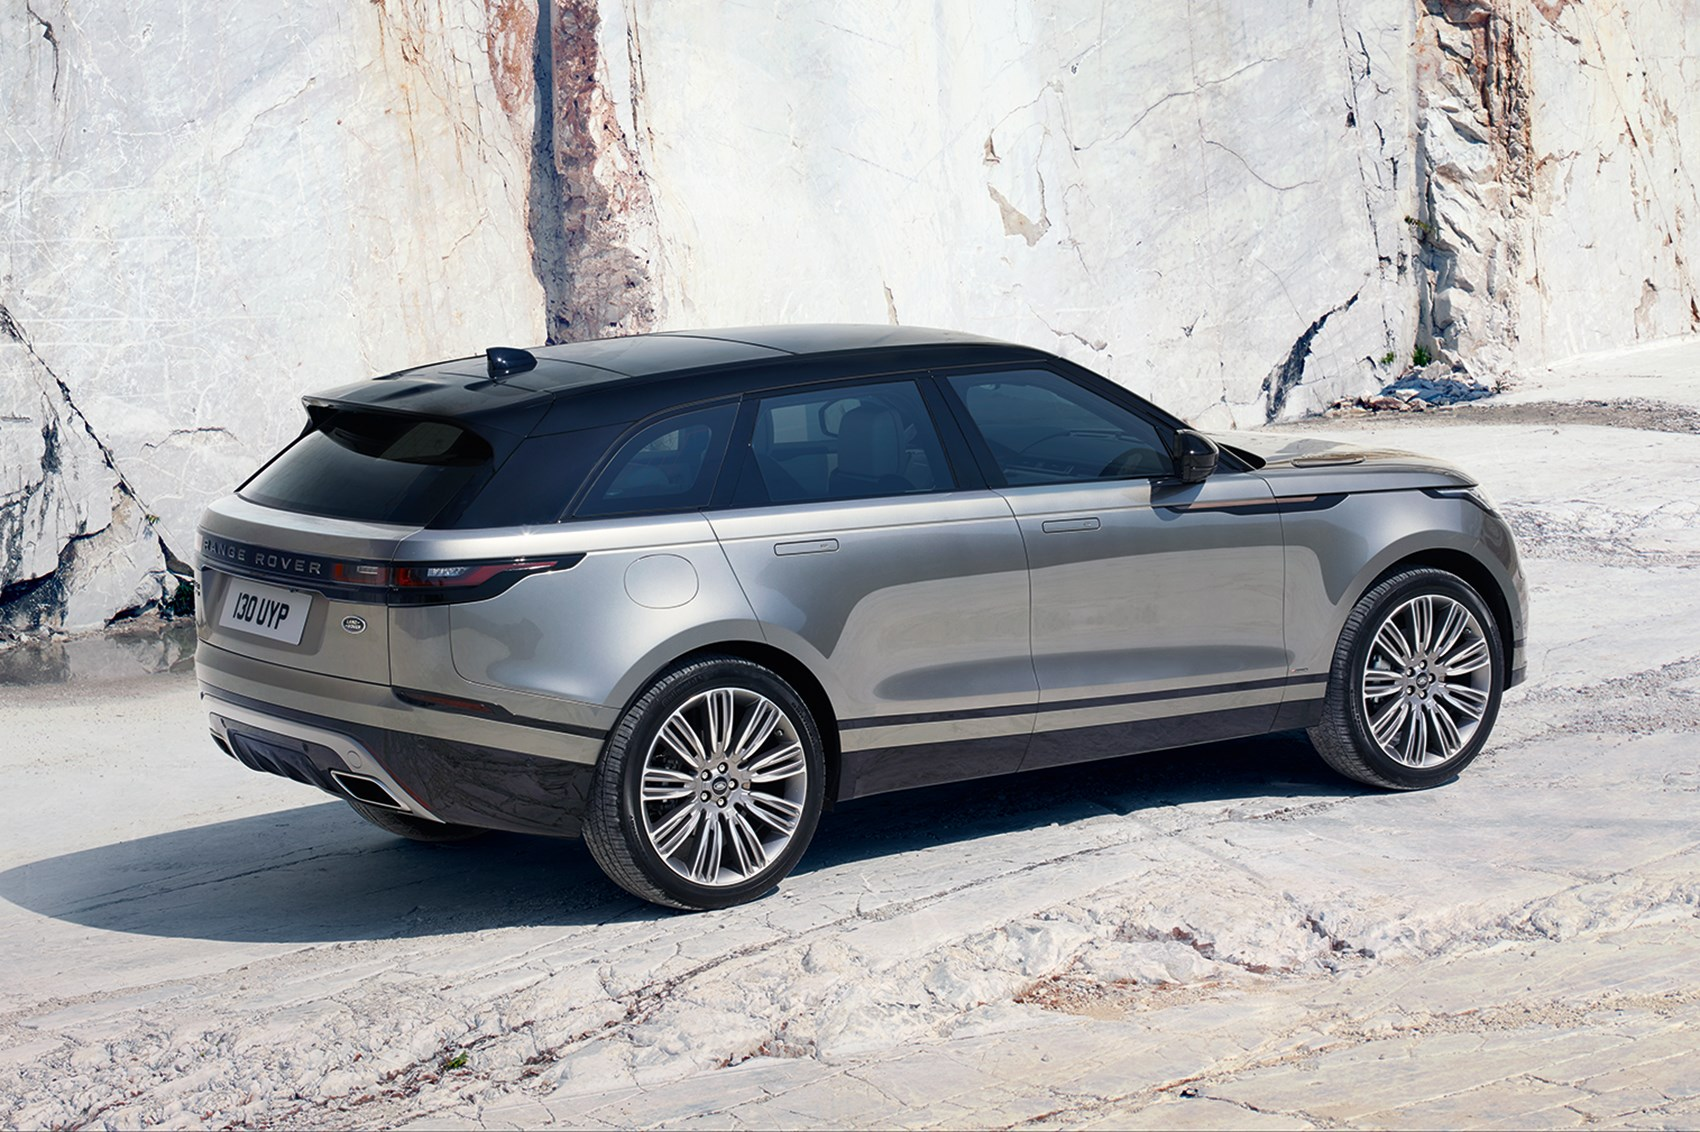 Range Rover Velar SUV: Prices, Pictures And Specs